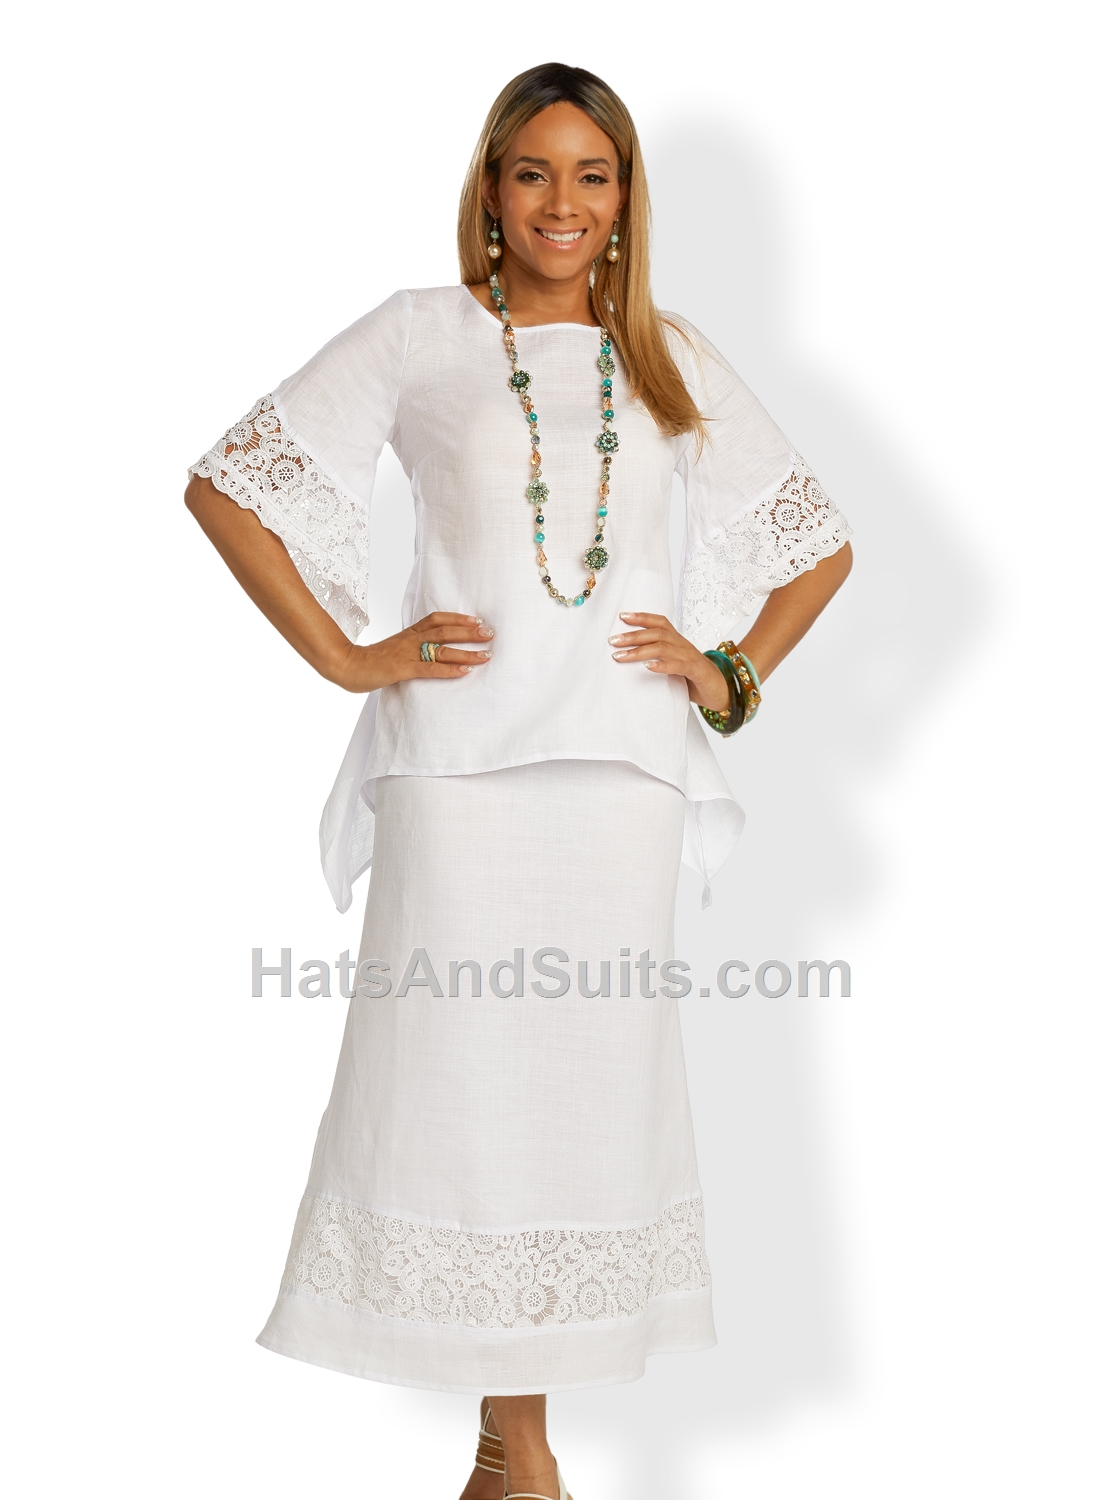 3342-white LISA RENE' 2 Pc. Tunic & Skirt Set. SP20